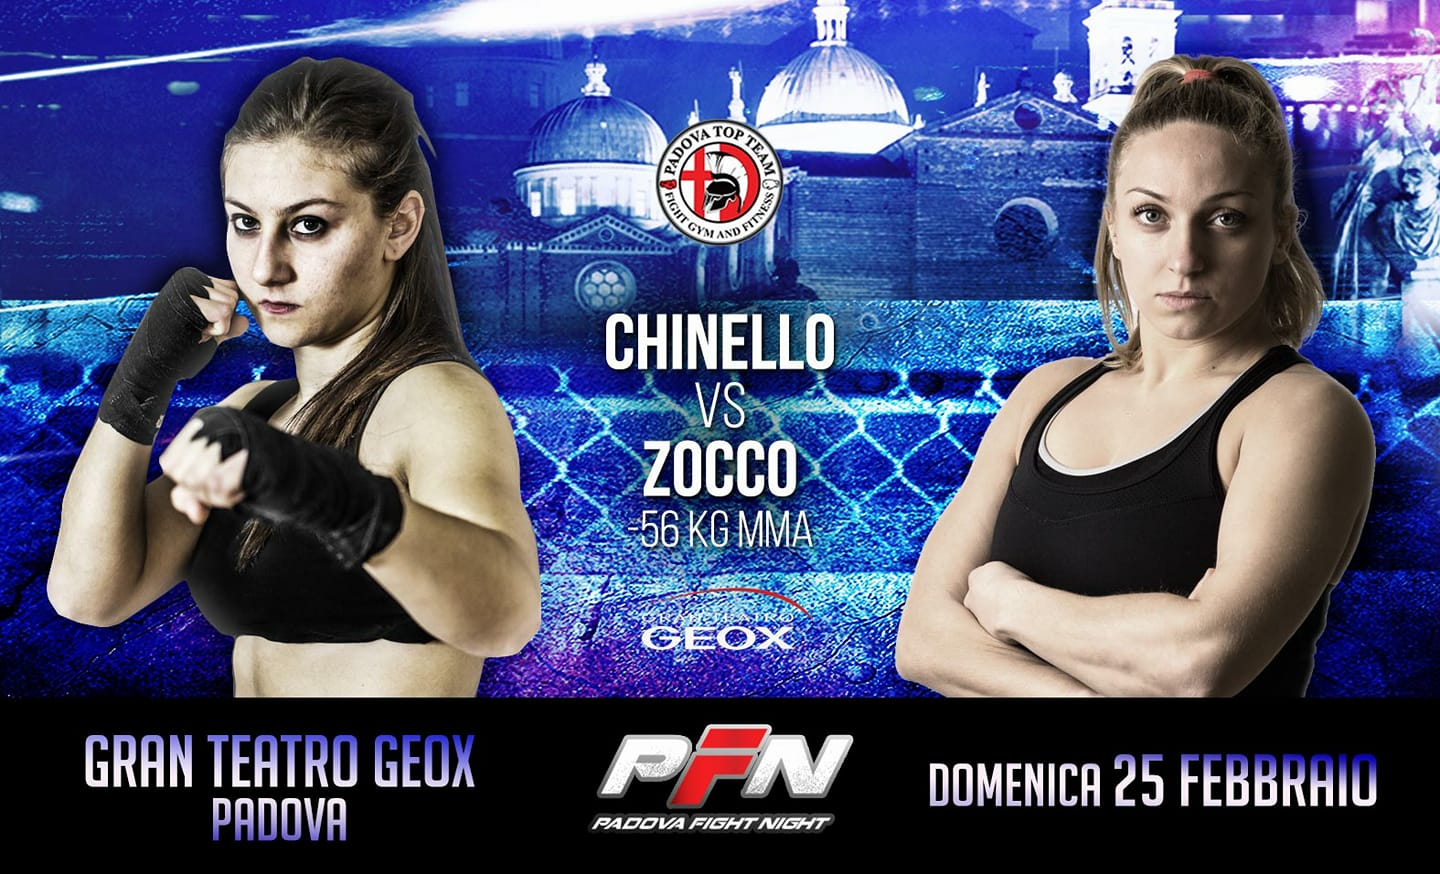 PADOVA FIGHT NIGHT 4